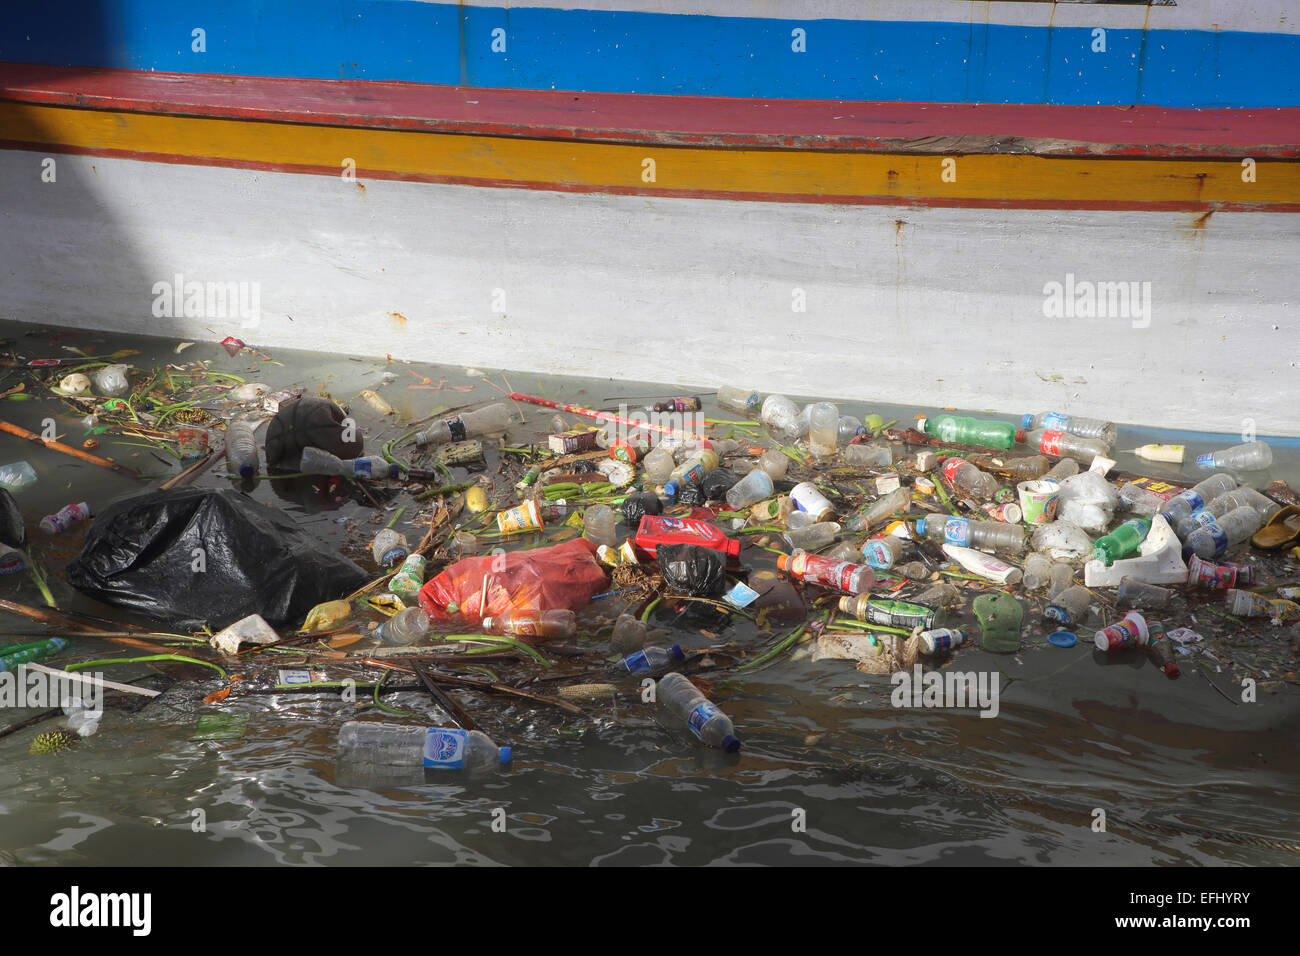 Plastic bottles and other trash floating in Manado River next to wooden boat - Stock Image